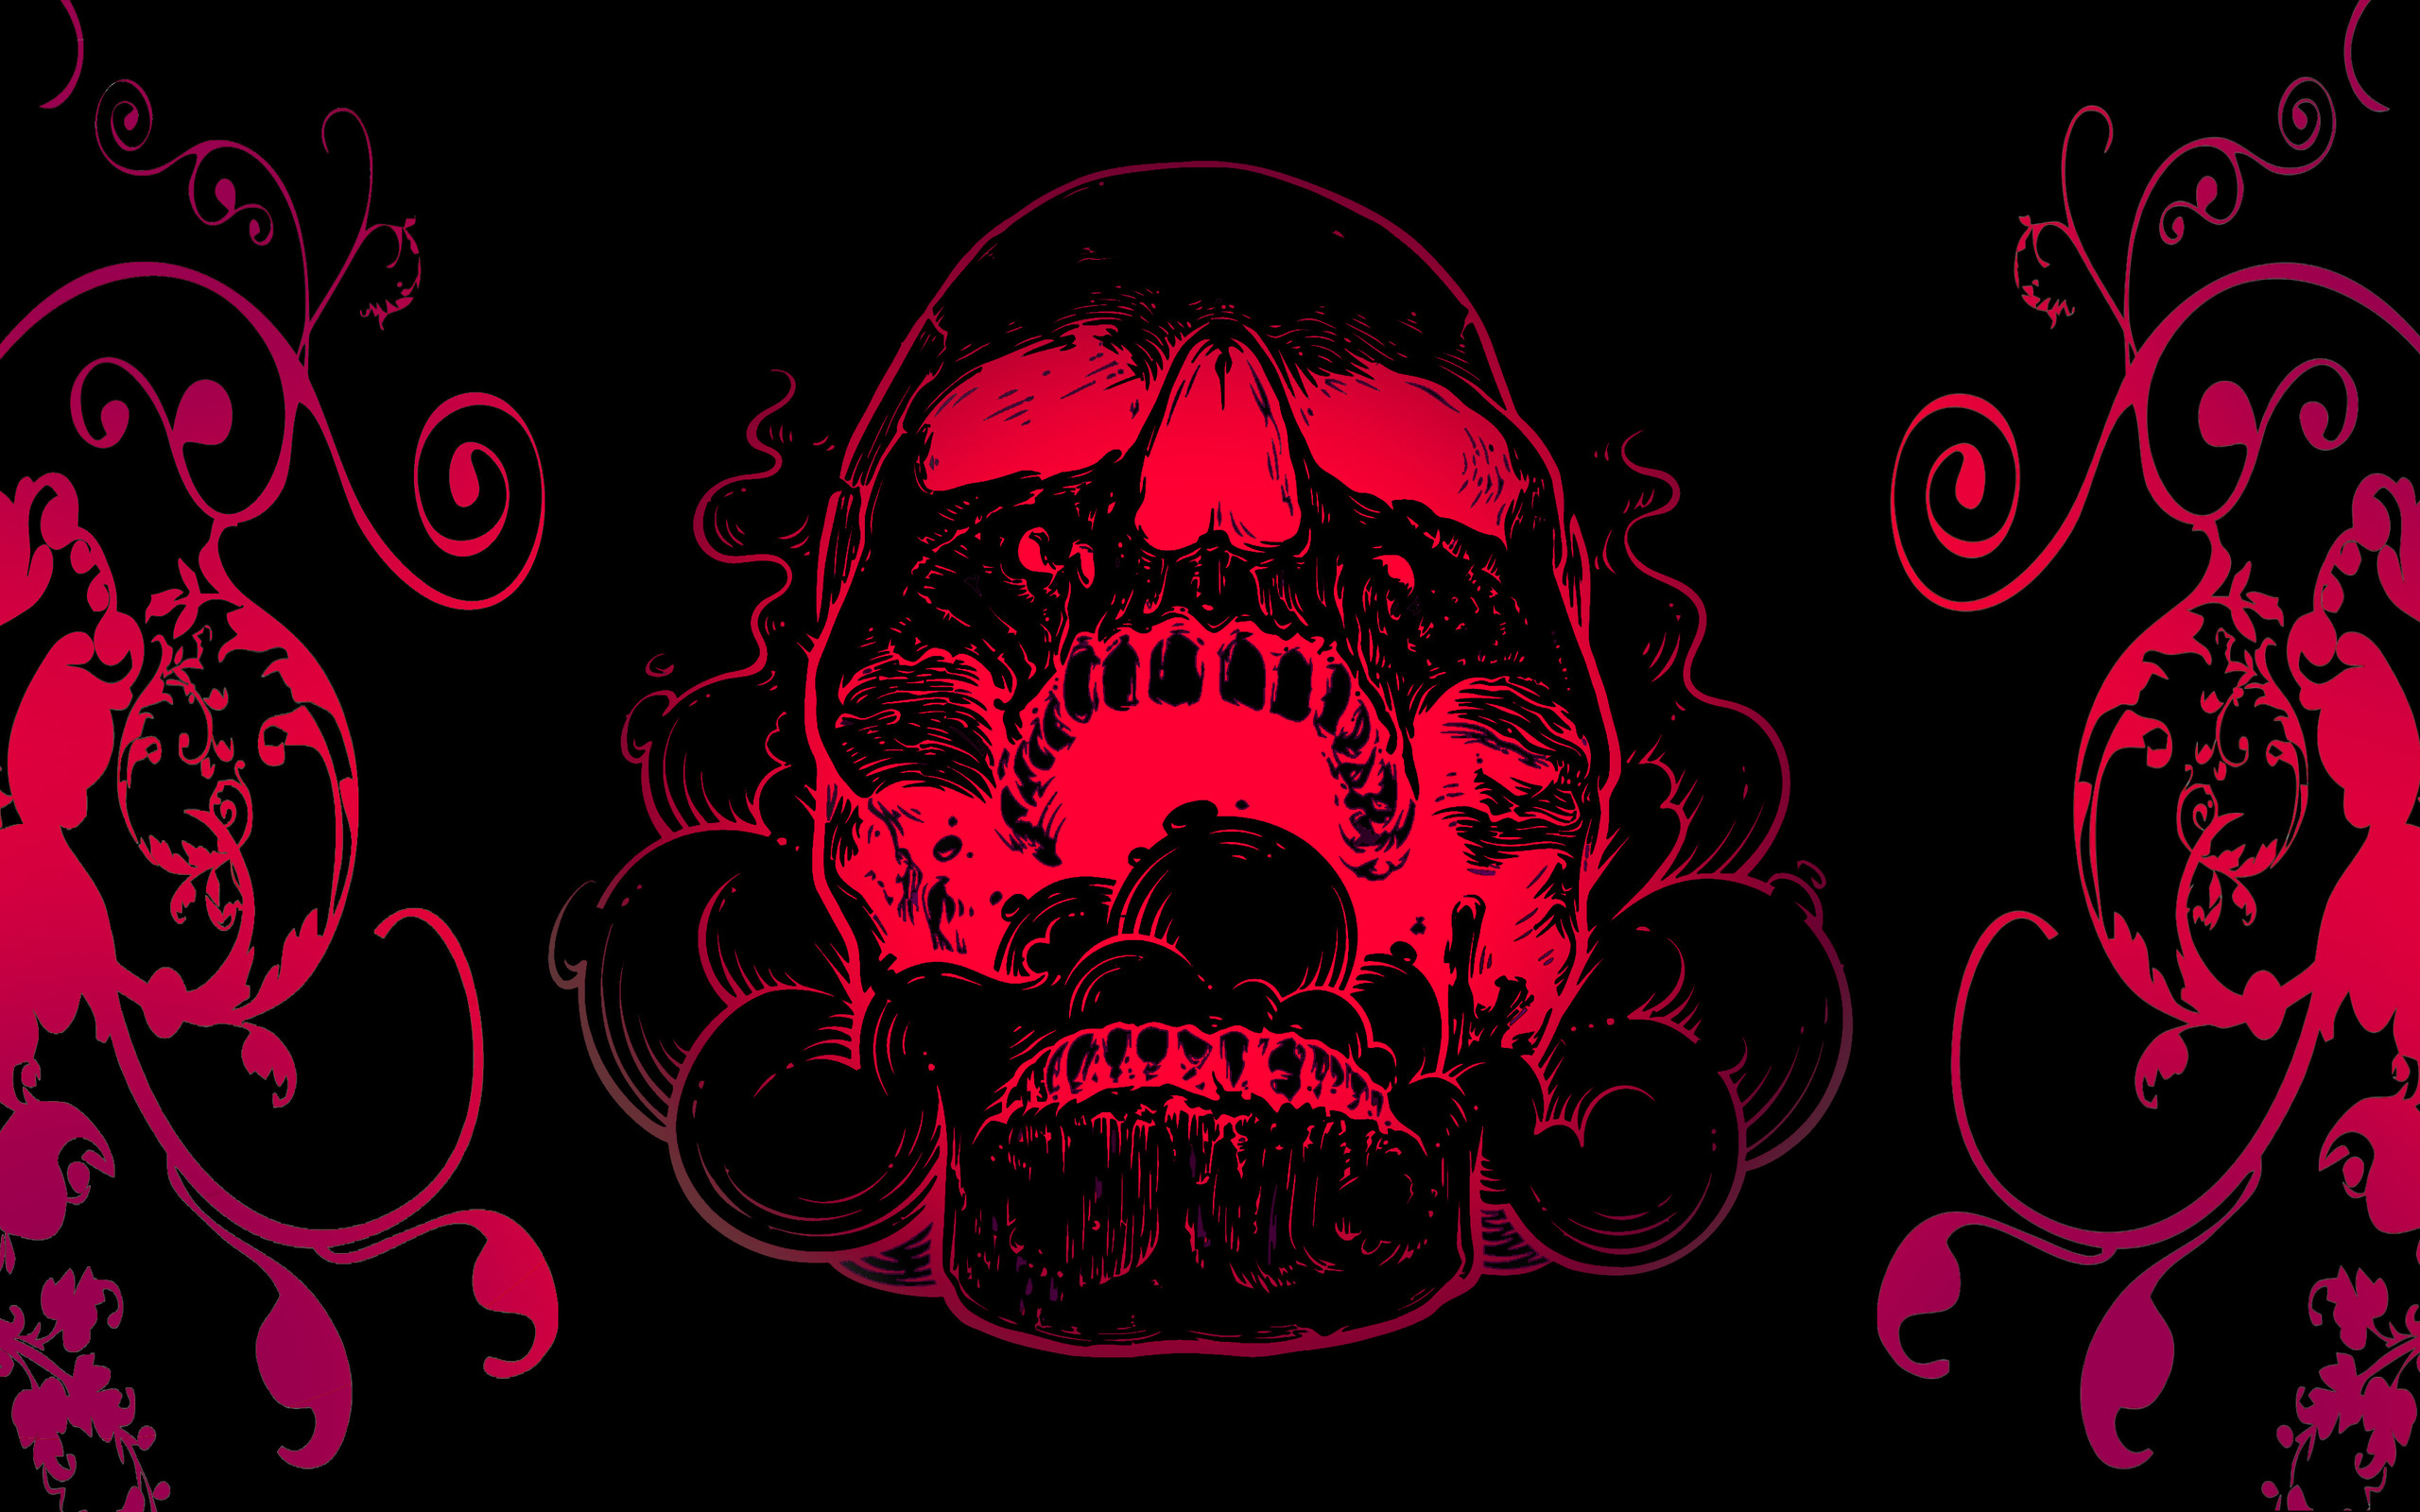 red-skull-flowers-black-background-4k-o4.jpg